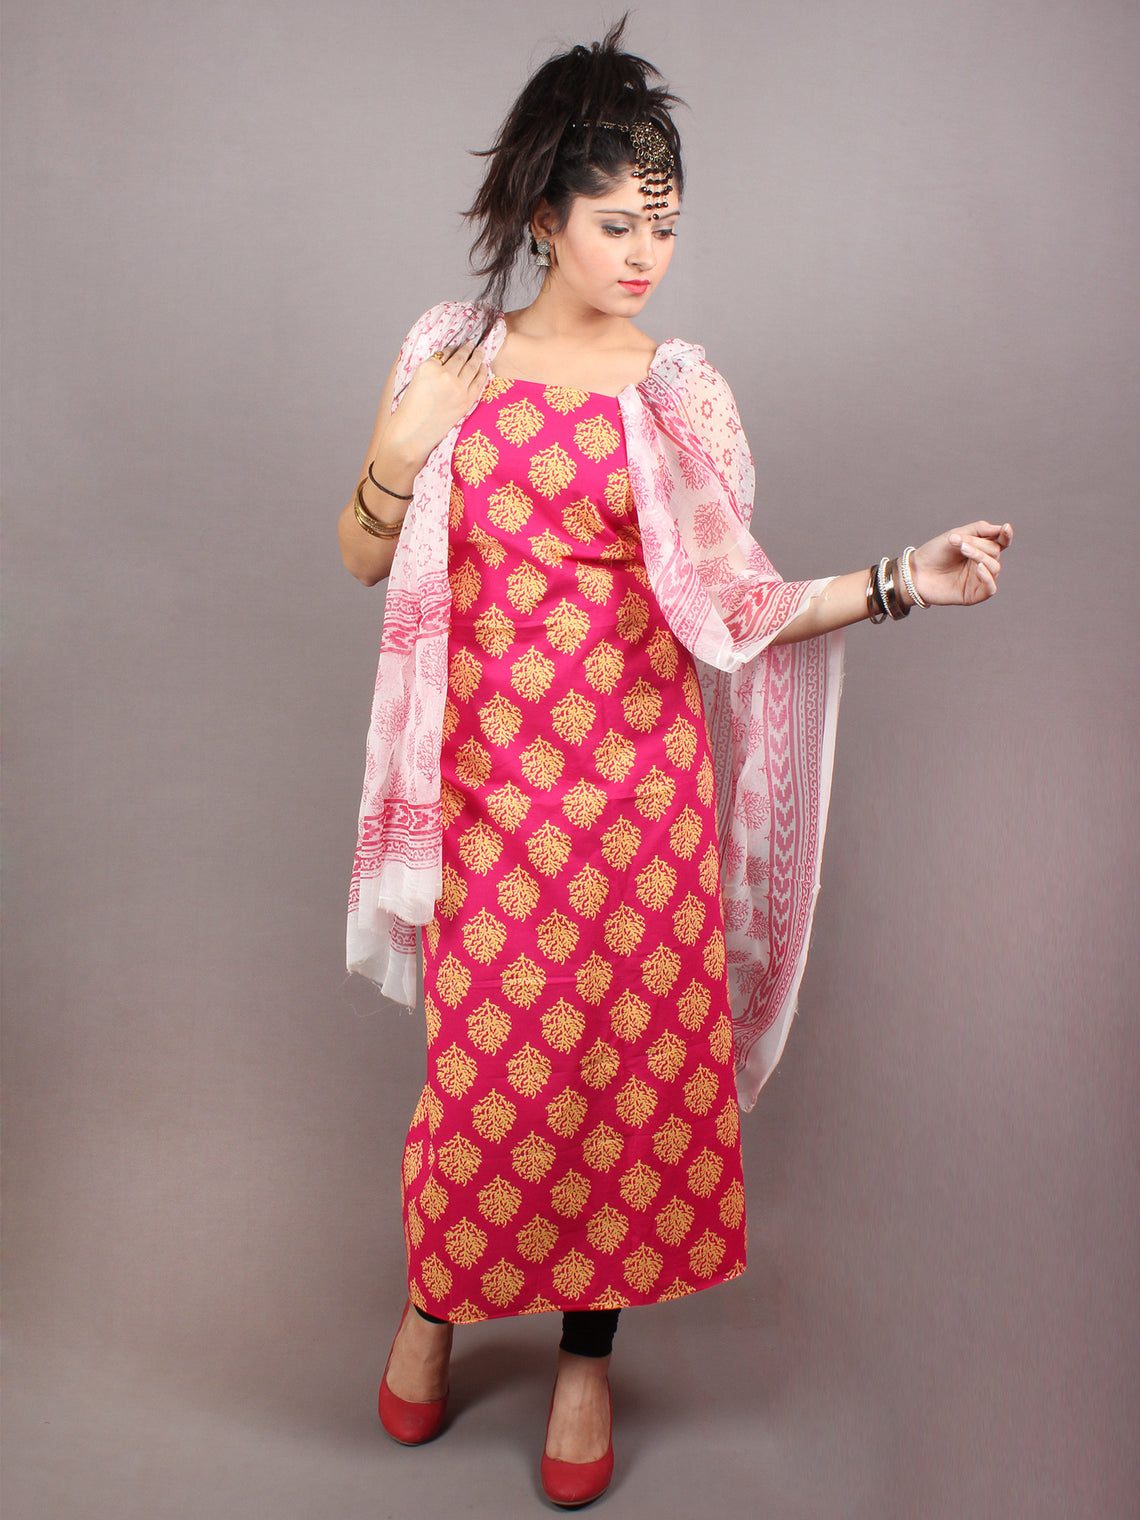 Pink Yellow Hand Block Printed Cotton Suit-Salwar Fabric With Chiffon Dupatta - S1628123